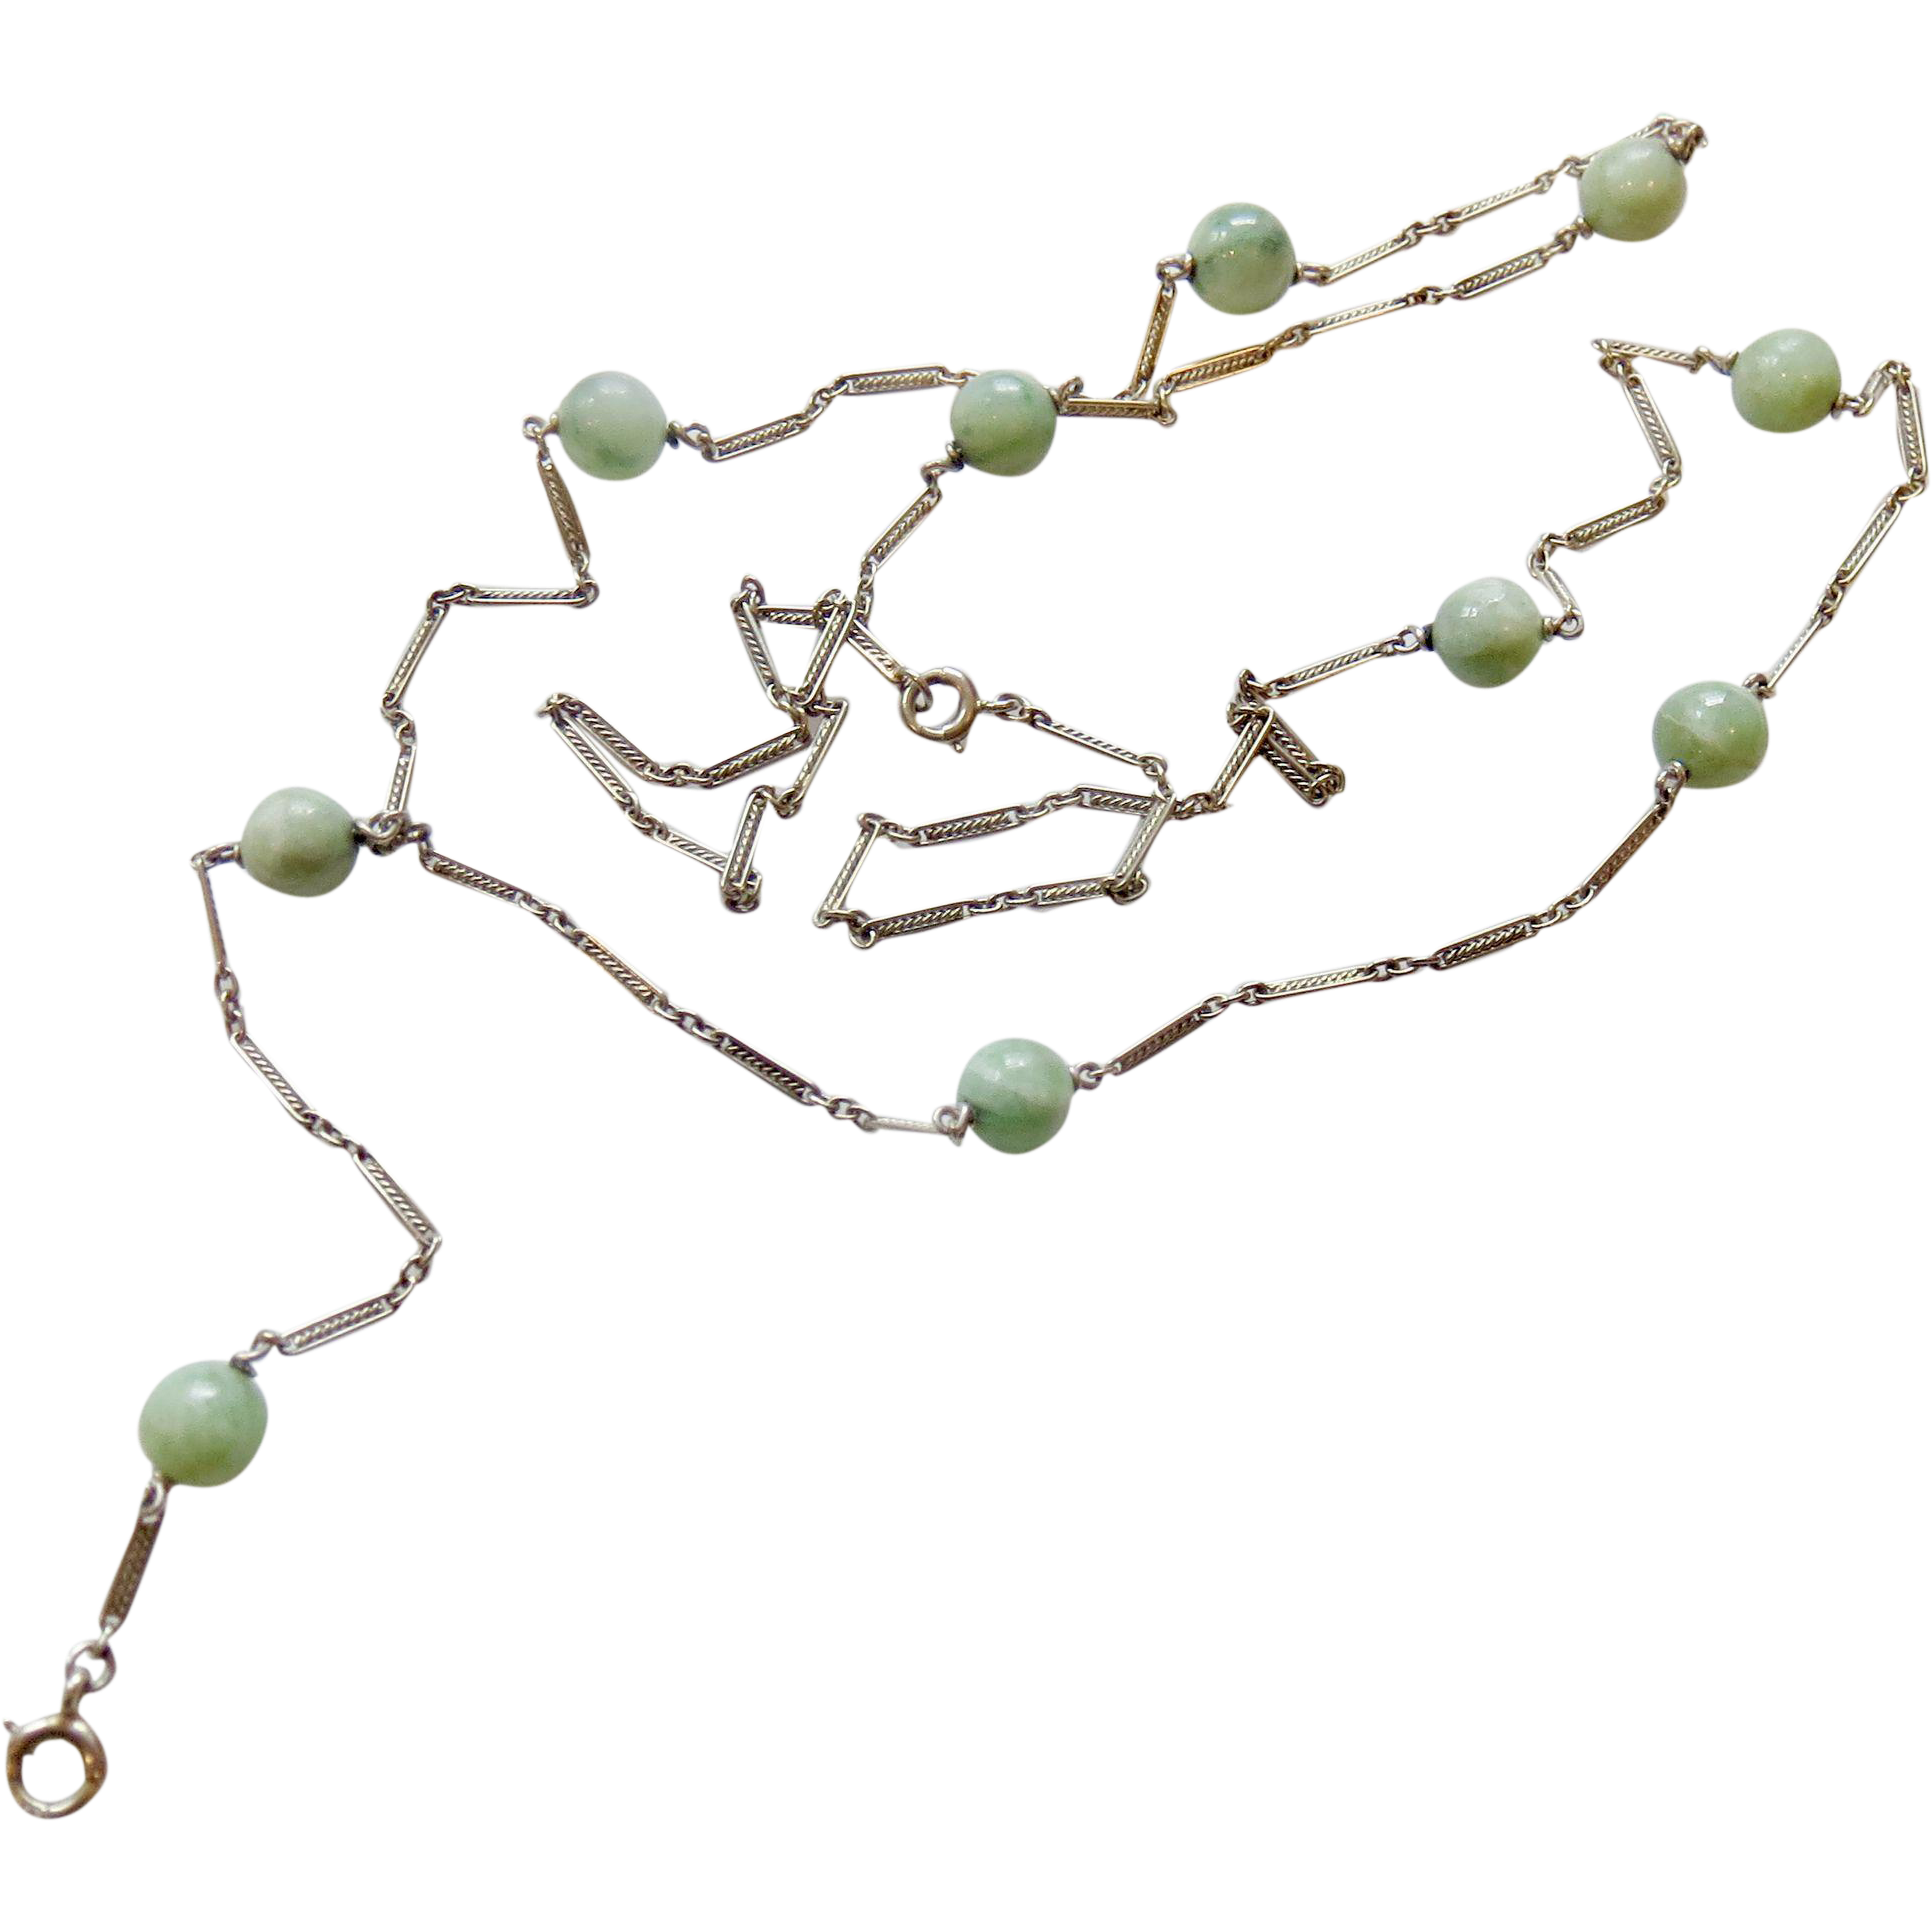 18k White Gold and Jade Bead Lorgnette or Watch Chain